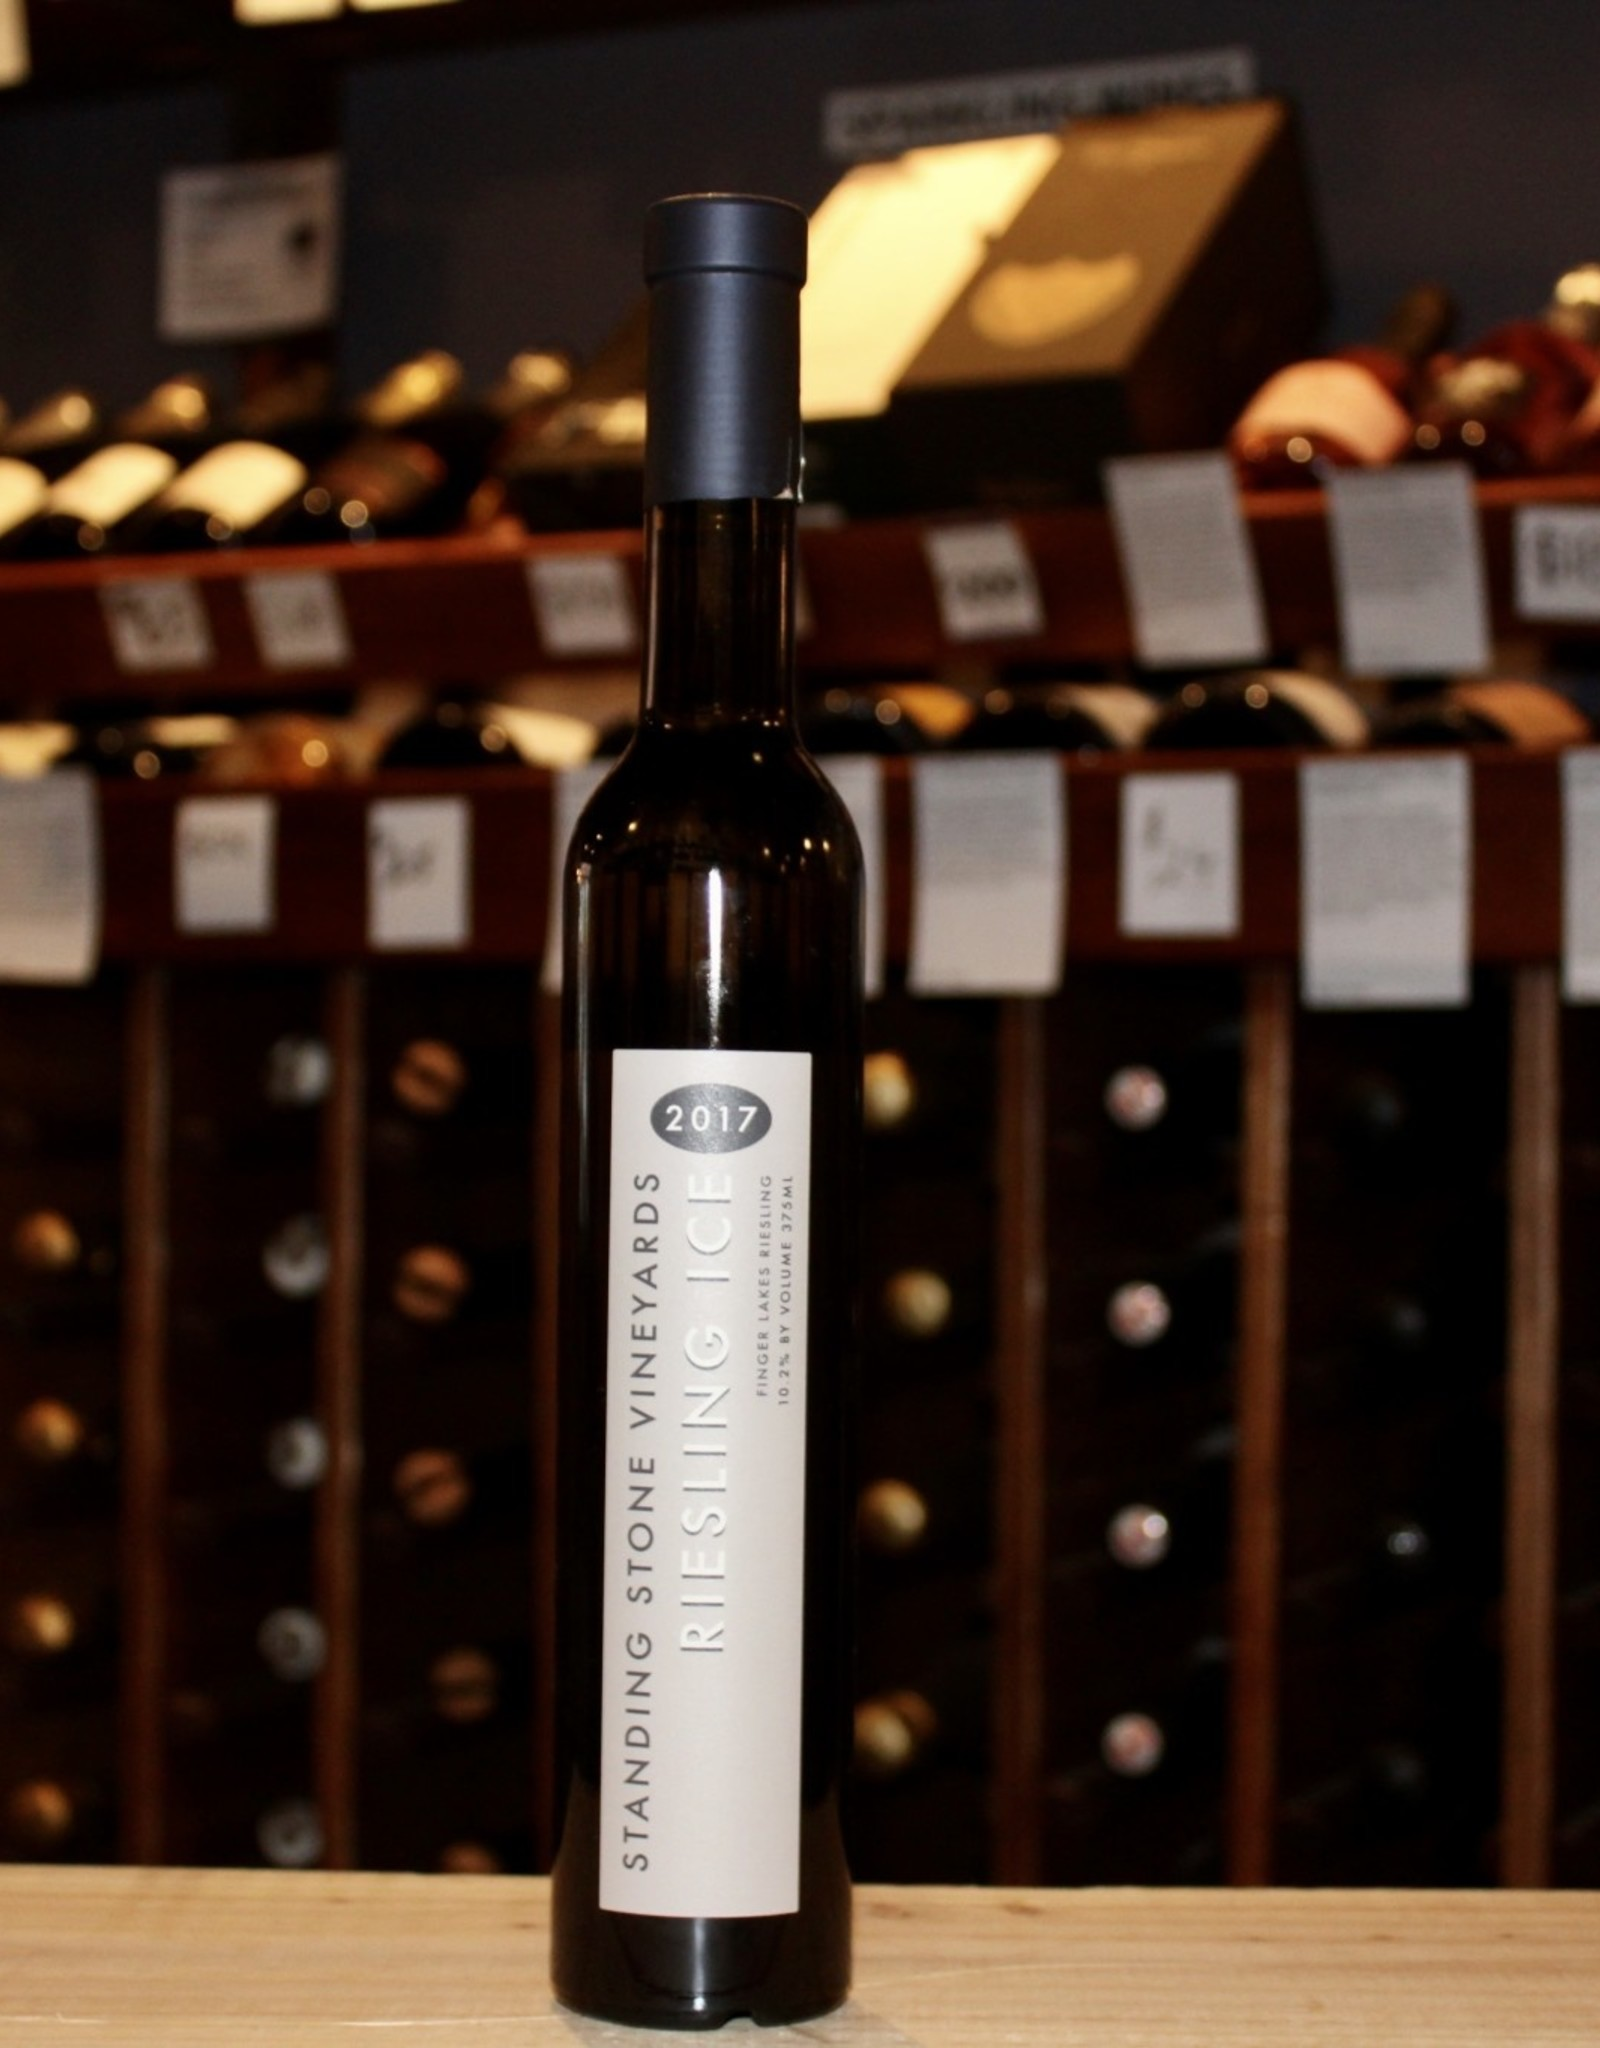 Wine 2017 Standing Stone Vineyards Riesling Ice Wine - Finger Lakes, NY (375ml)